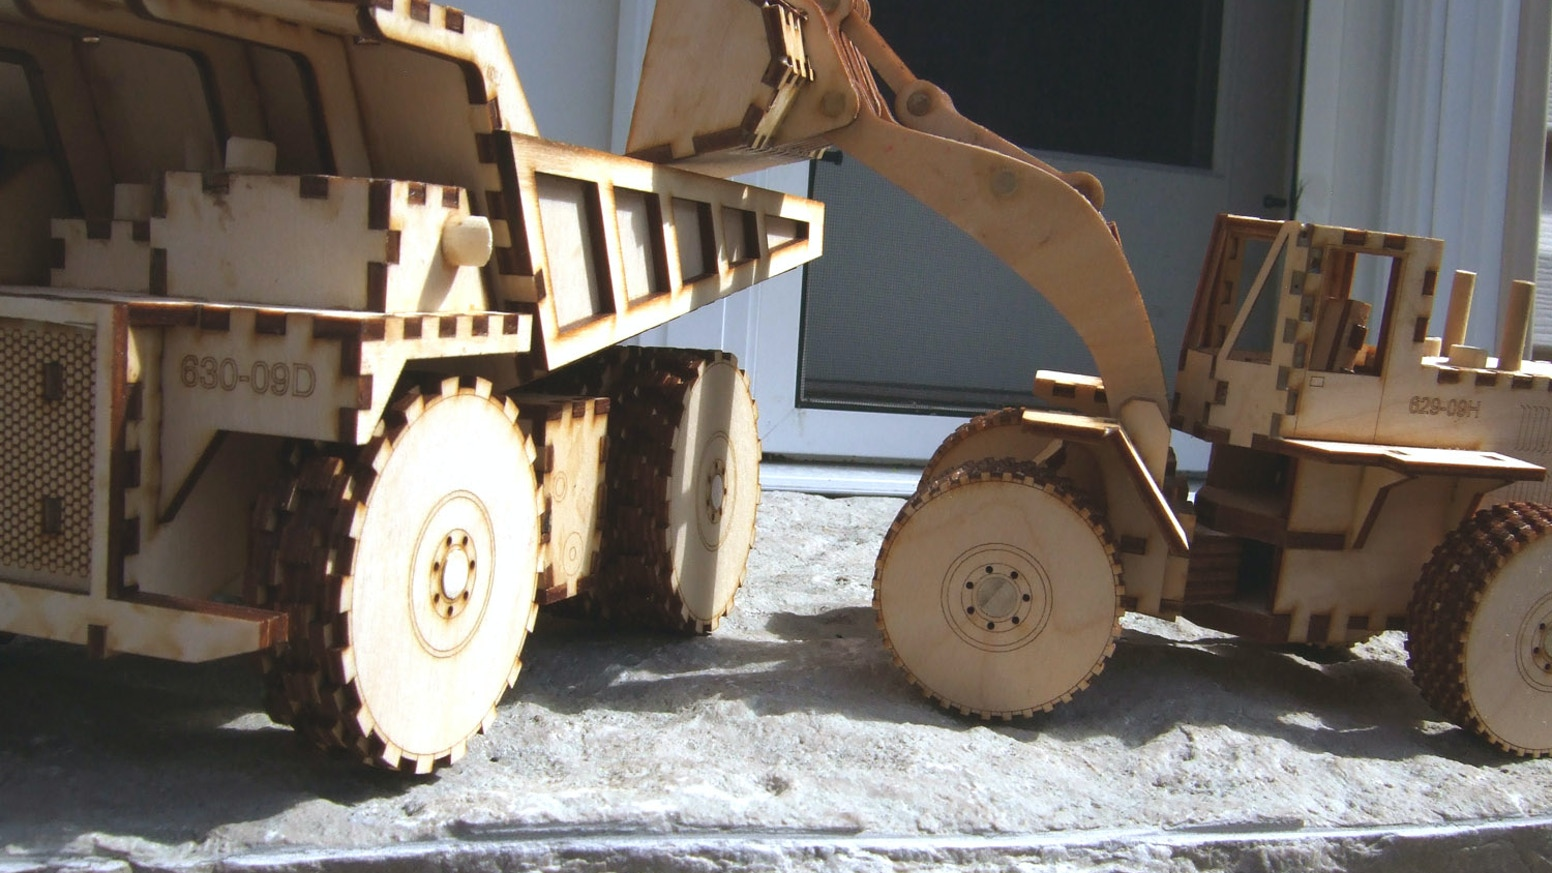 heartwood toys: laser cut wooden construction toys